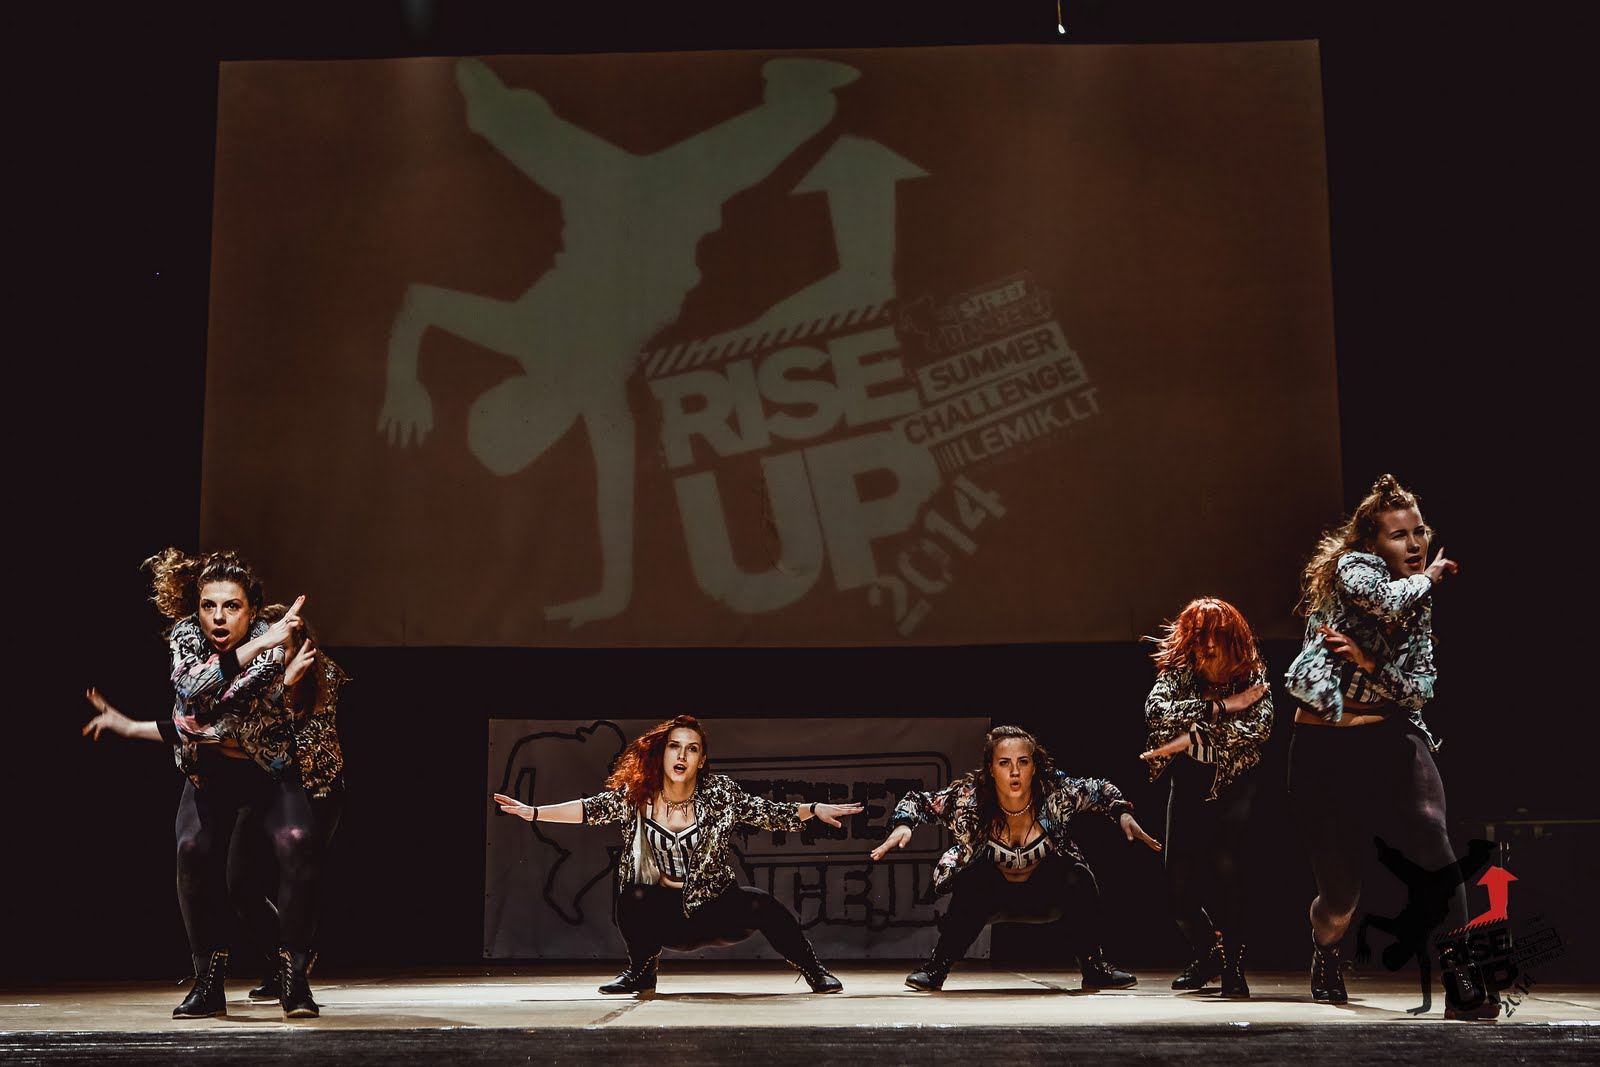 SKILLZ at RISEUP 2014 - _MG_5440.jpg